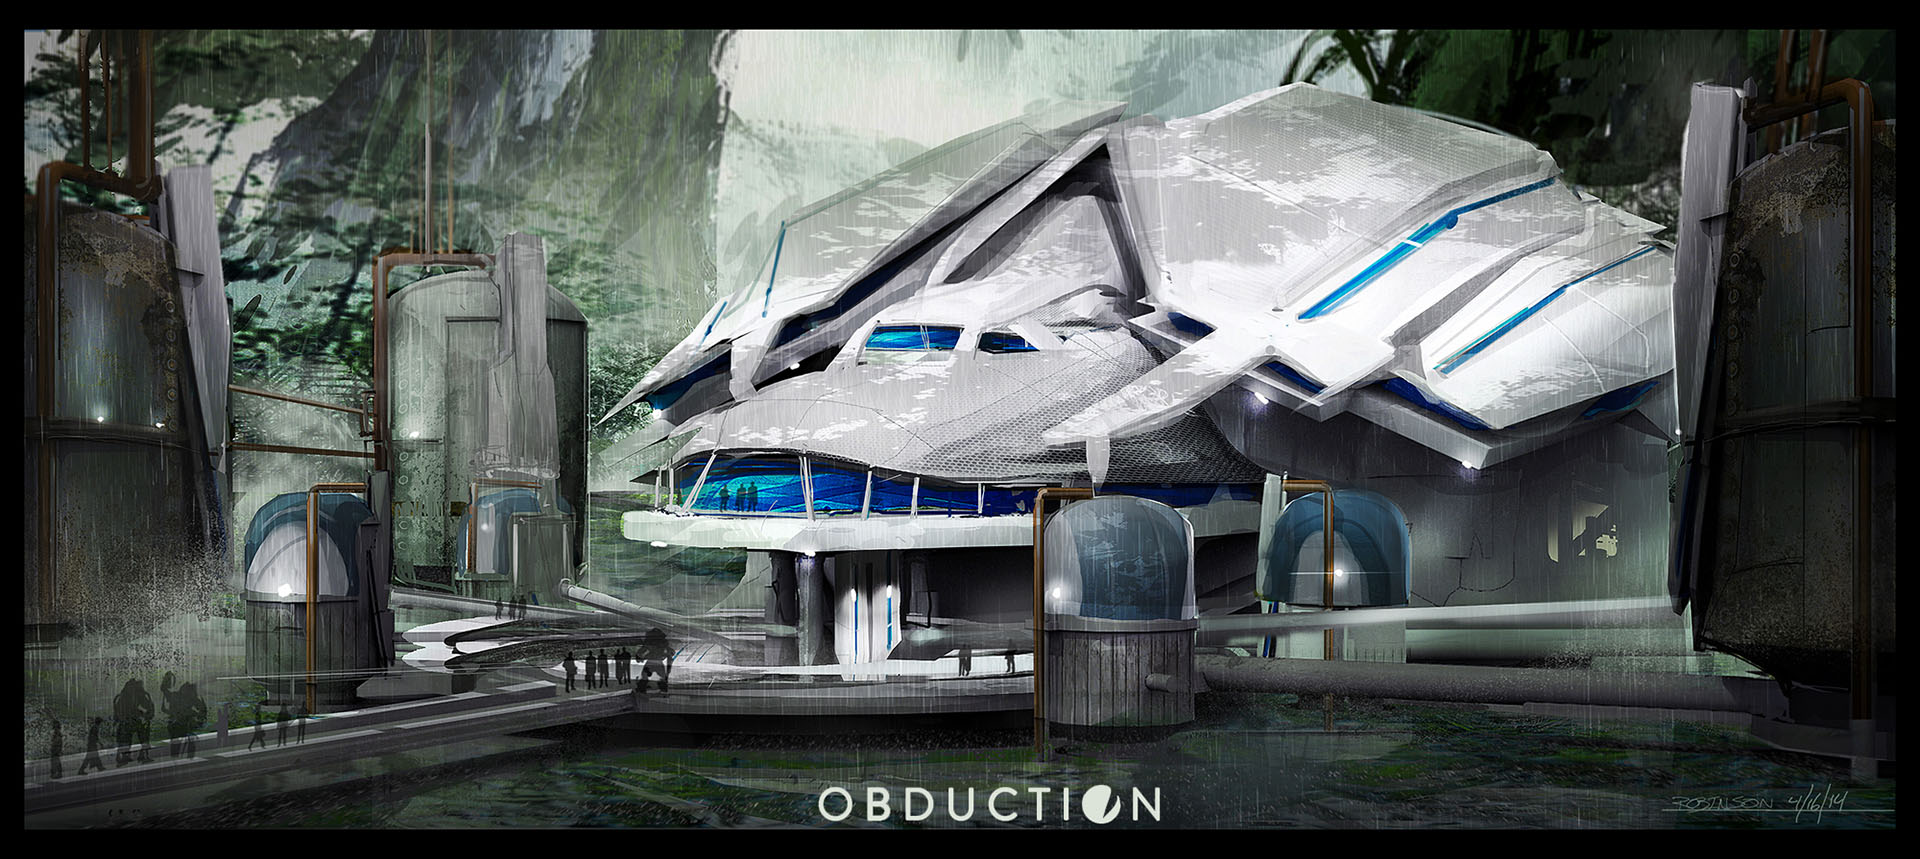 Obduction Concept 04